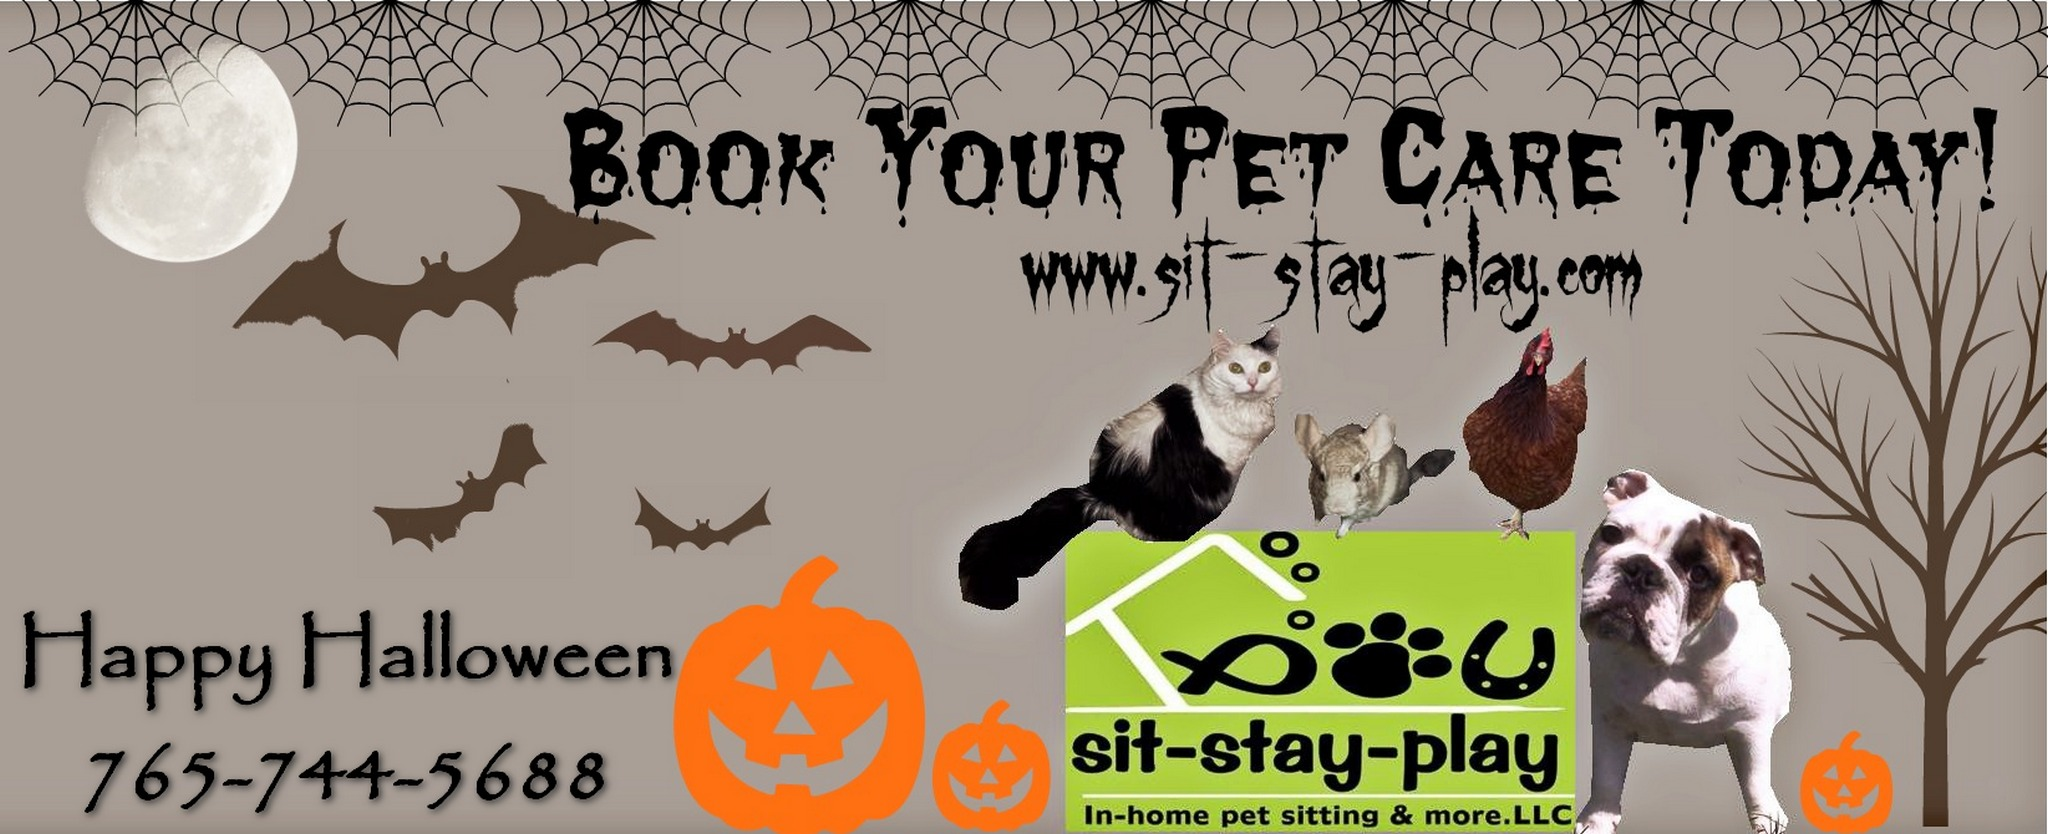 Sit-Stay-Play Pet Sitting. LLC